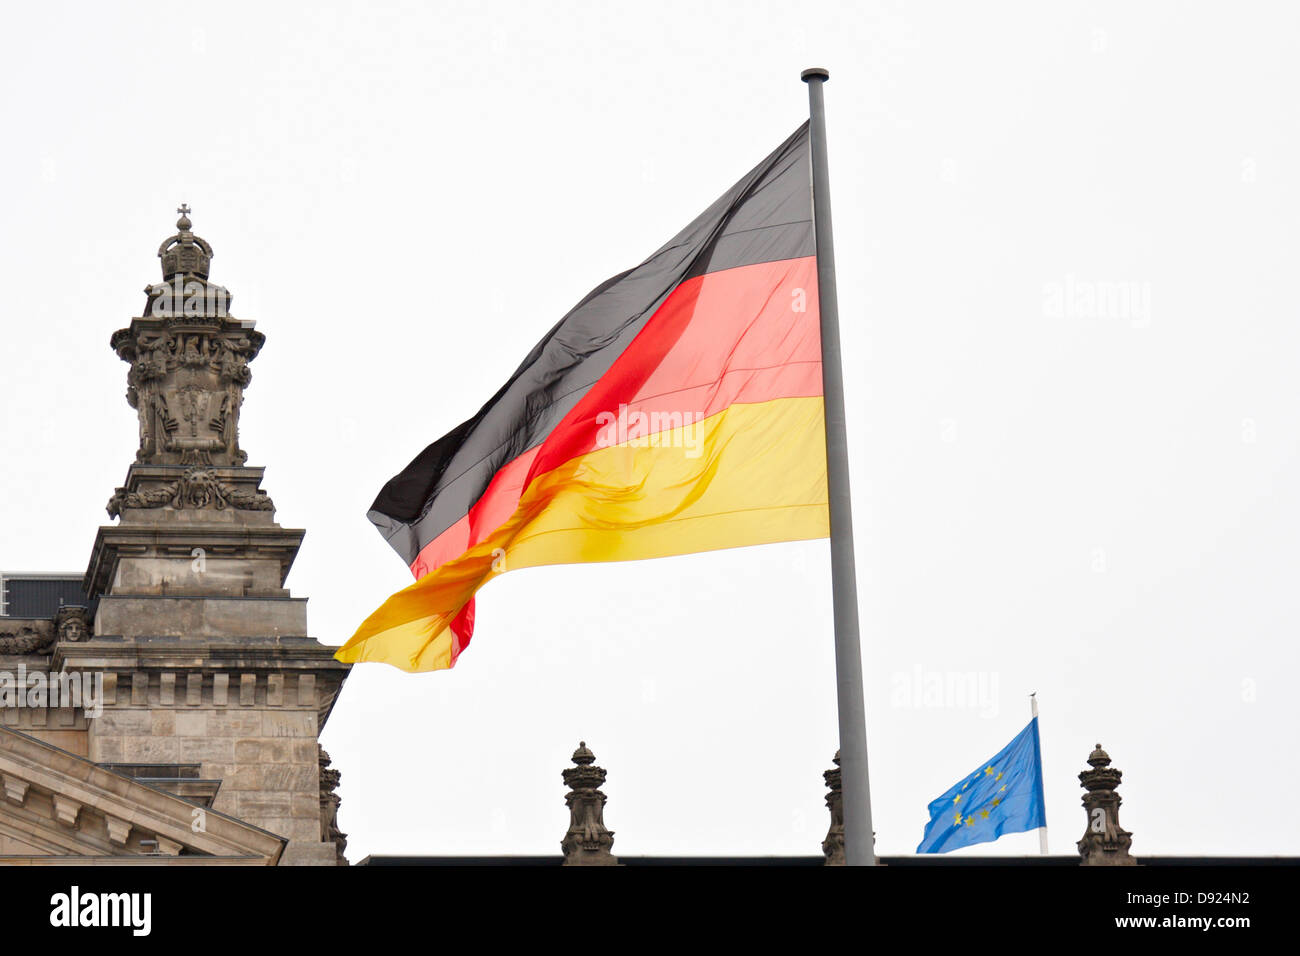 Big German flag and small EU flag on the roof of the Reichstag - Stock Image